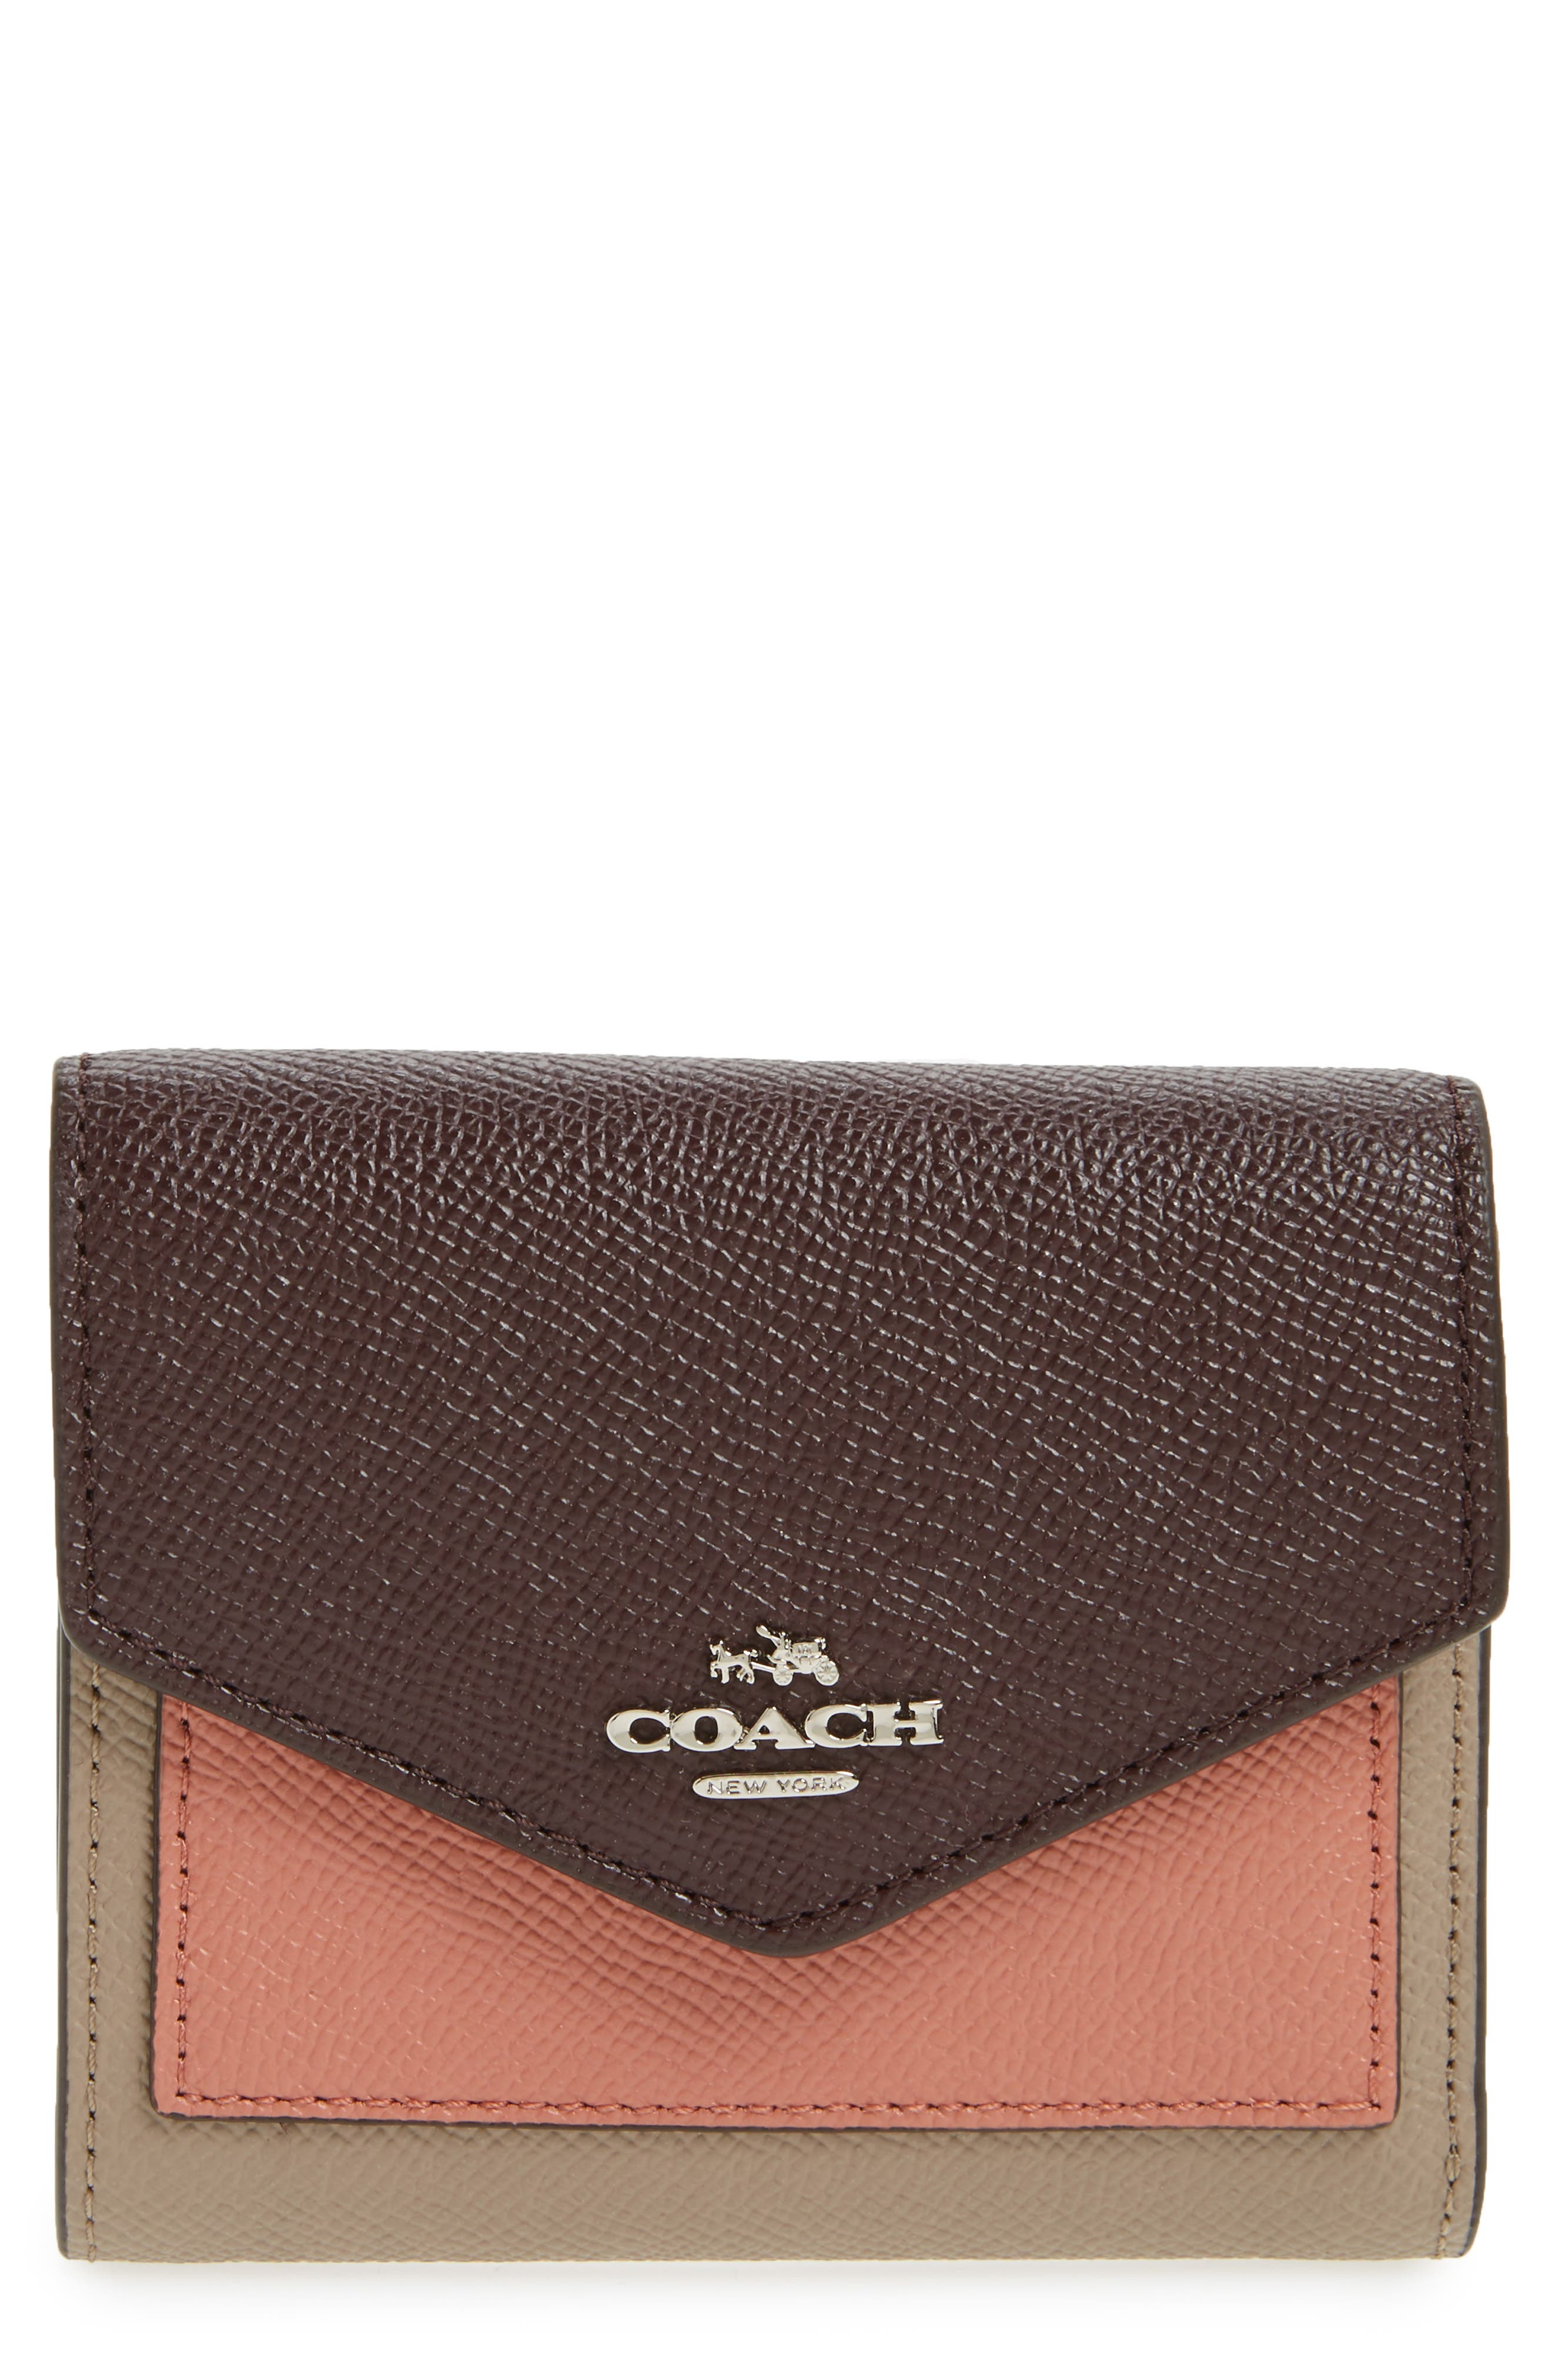 Small Colorblock Calfskin Leather Wallet,                             Main thumbnail 1, color,                             Stone/ Melon/ Oxblood